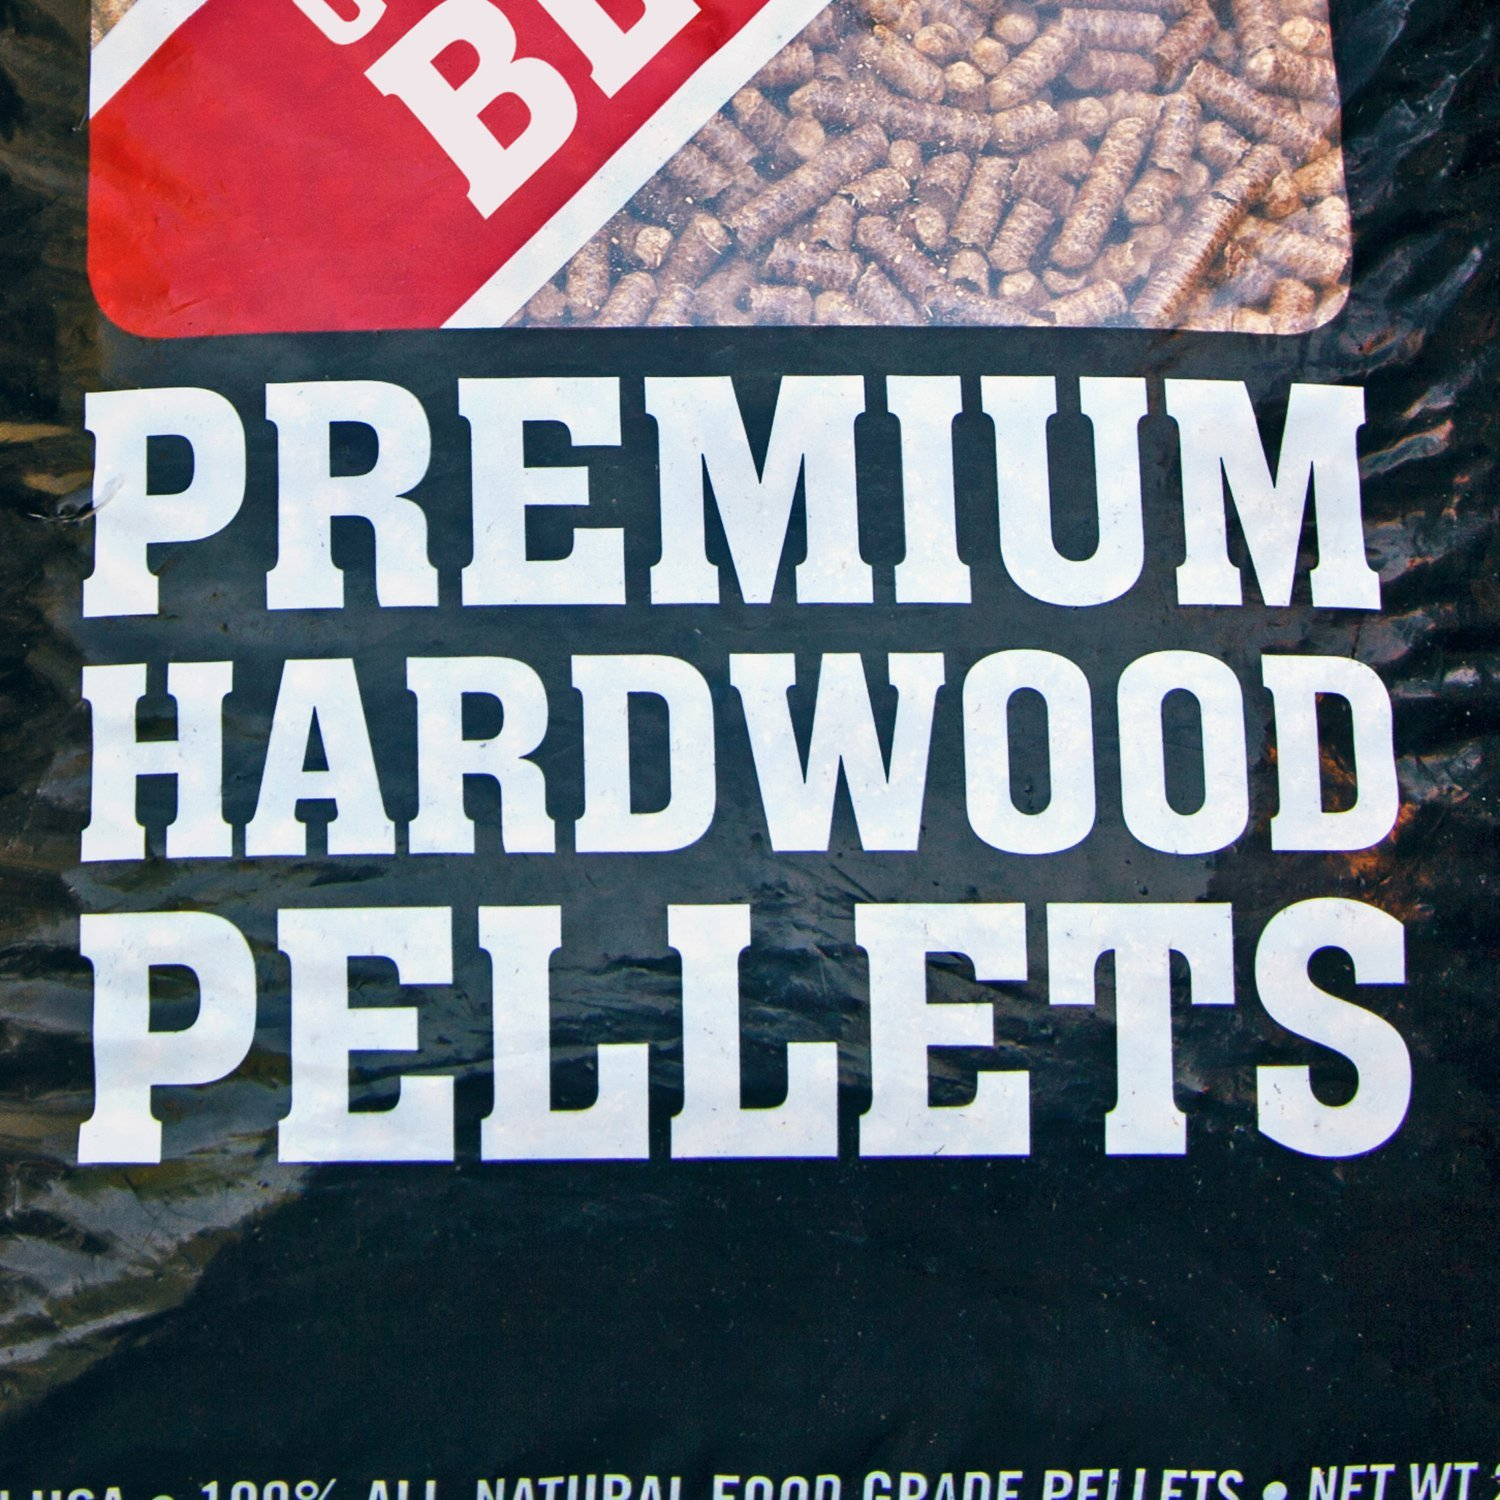 Camp Chef Smoker Grill Competition Blend Hardwood Pellets, 20 Pounds (4 Pack) by Camp Chef (Image #4)